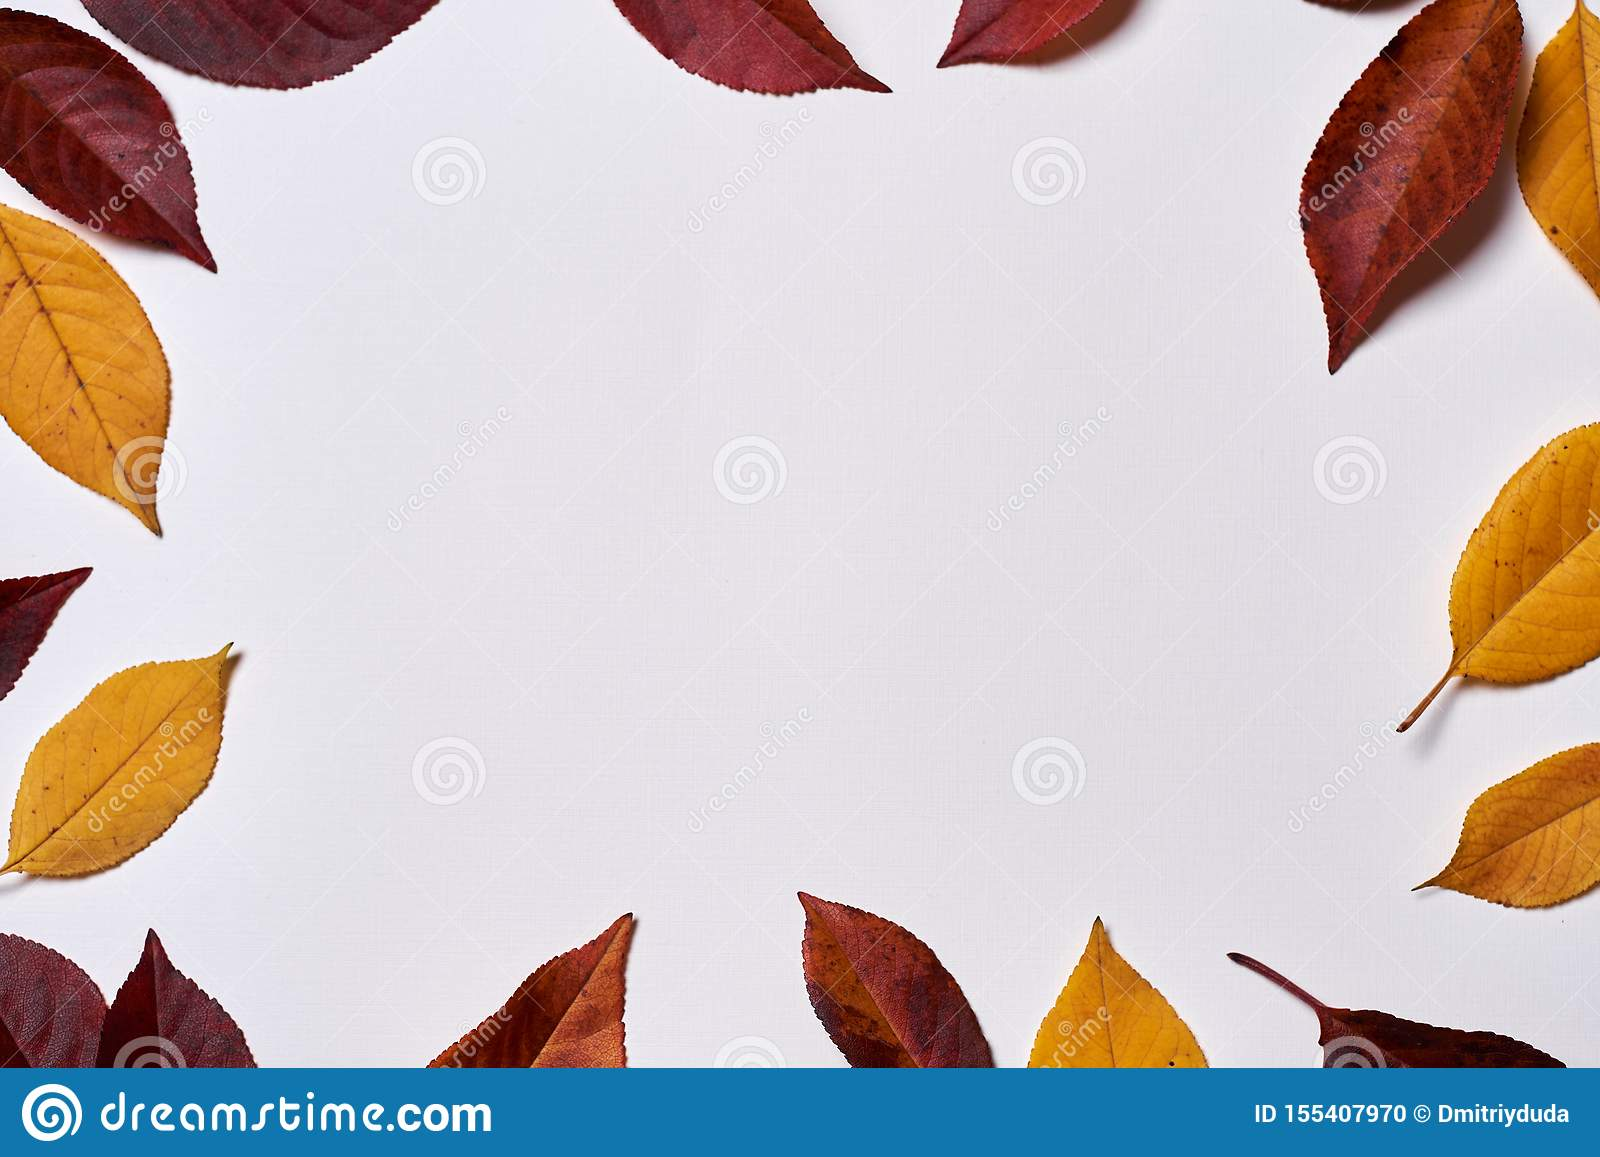 Autumn composition. Frame made of yellow and red leaves on white background. Fall concept. Autumn thanksgiving texture. Flat lay.